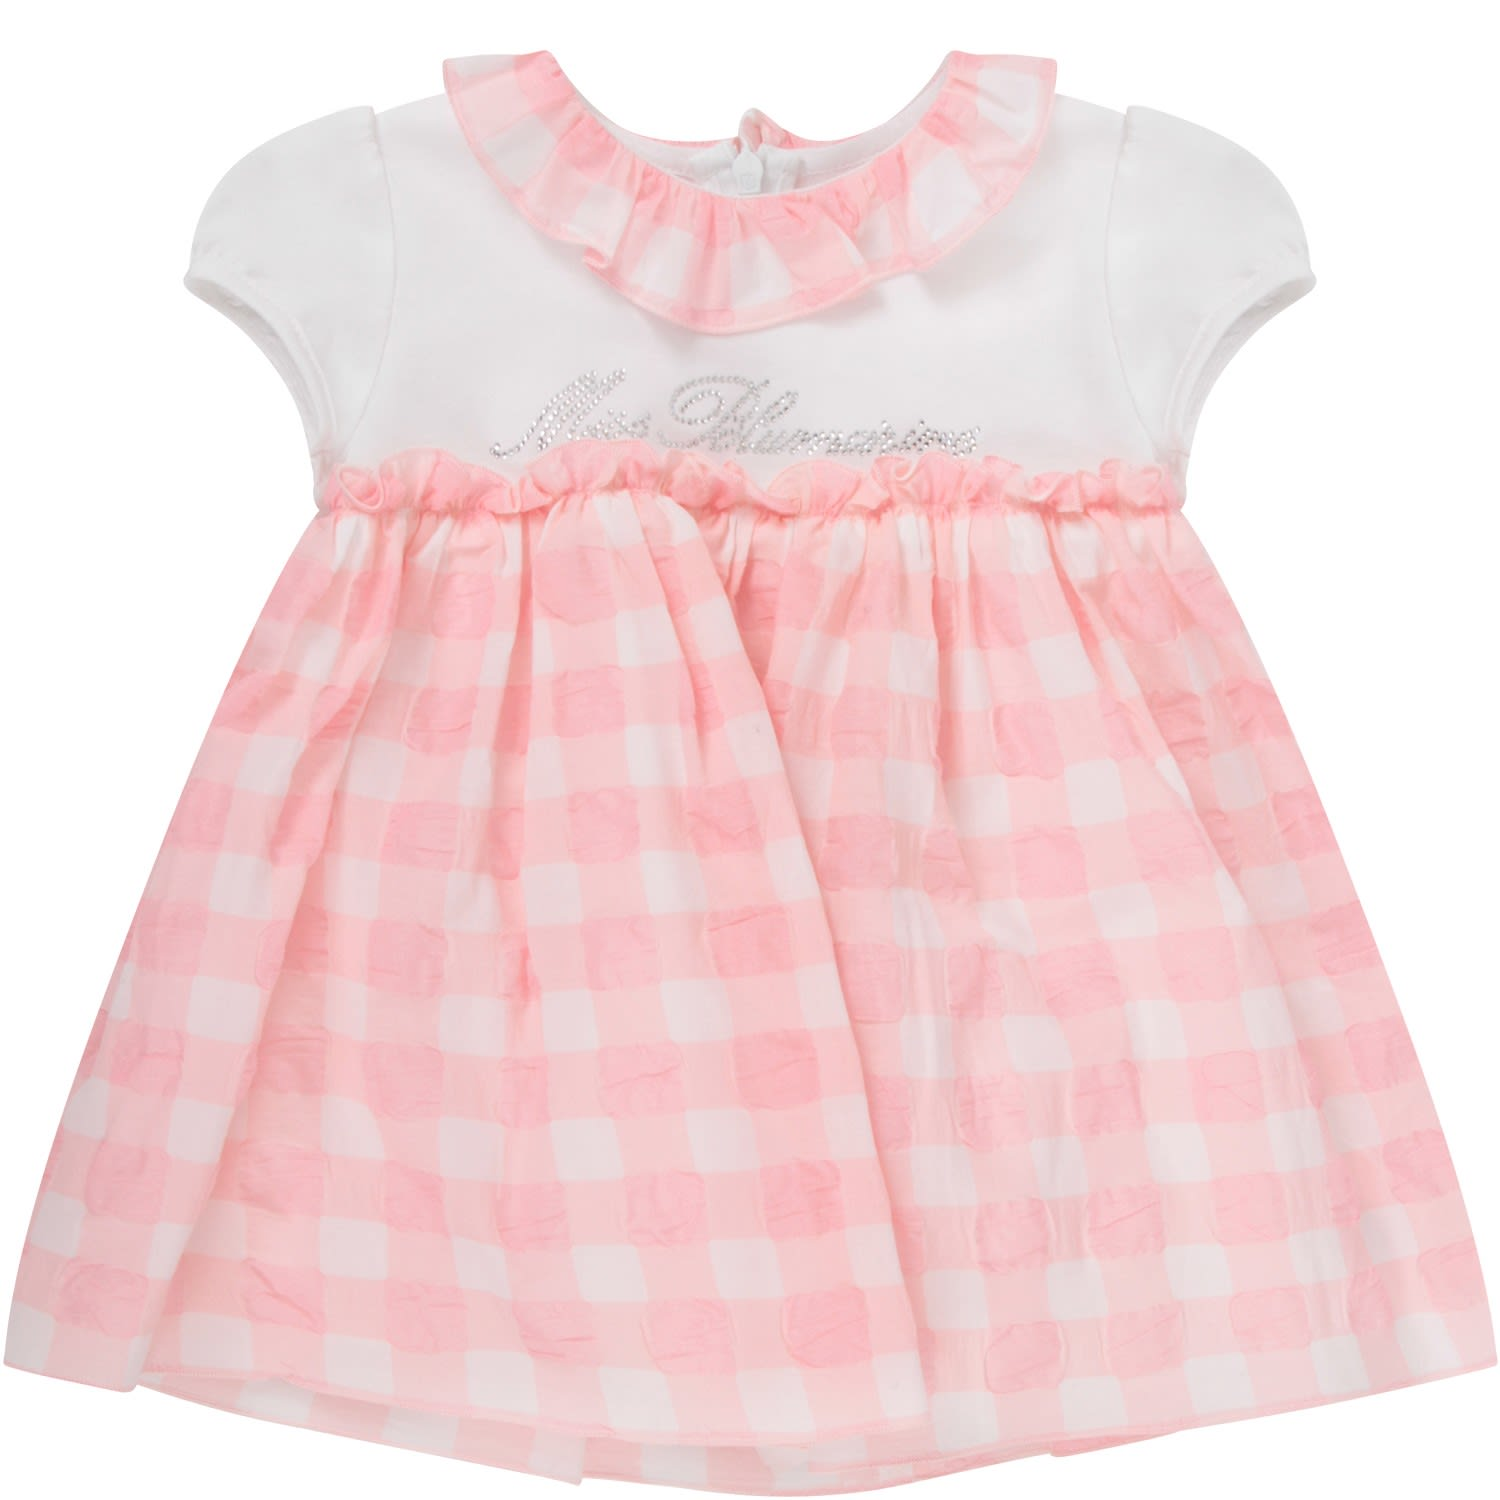 Buy Blumarine White And Pink Babygirl Dress With Logo online, shop Blumarine with free shipping